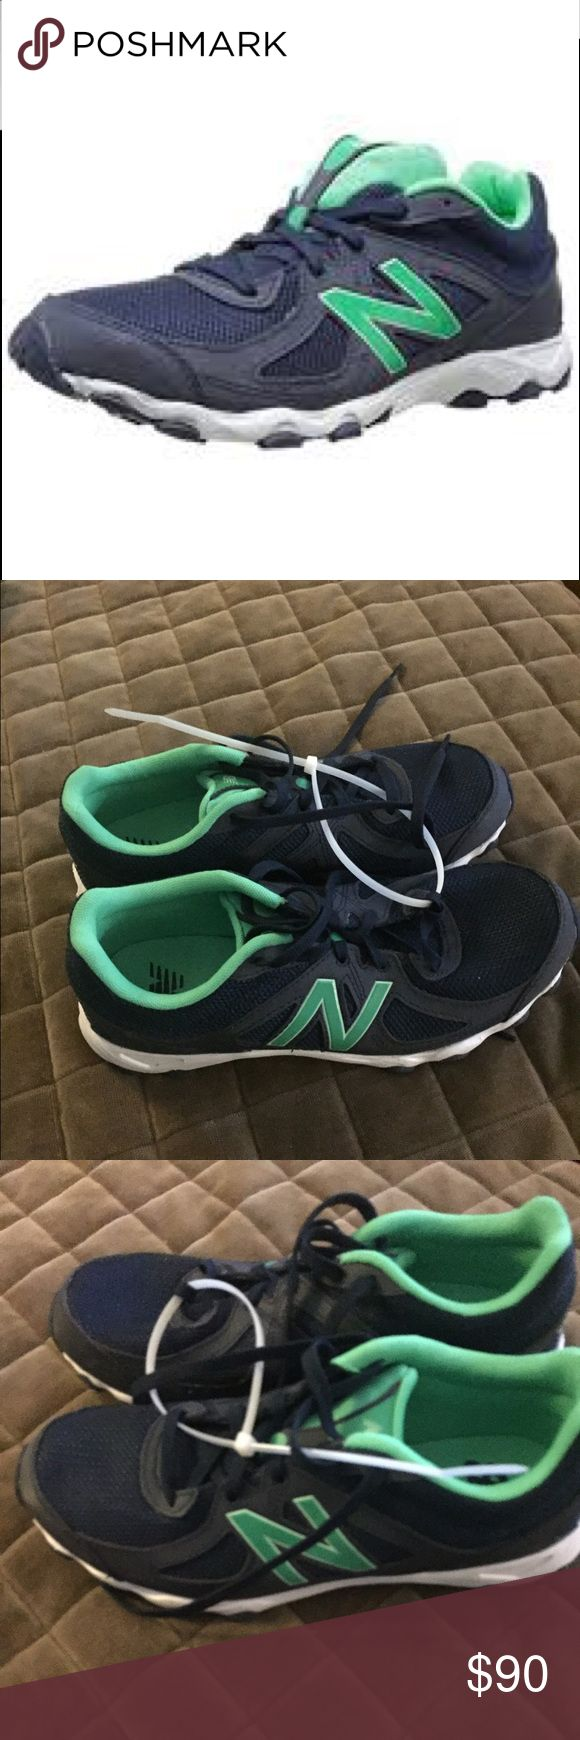 New Balance Running Shoes - WL520 Navy/Green Lightweight Running shoes - brand new, never worn 100% Leather trim  Imported  Rubber sole  Injection molded ethylene vinyl acetate midsole New Balance Shoes Sneakers